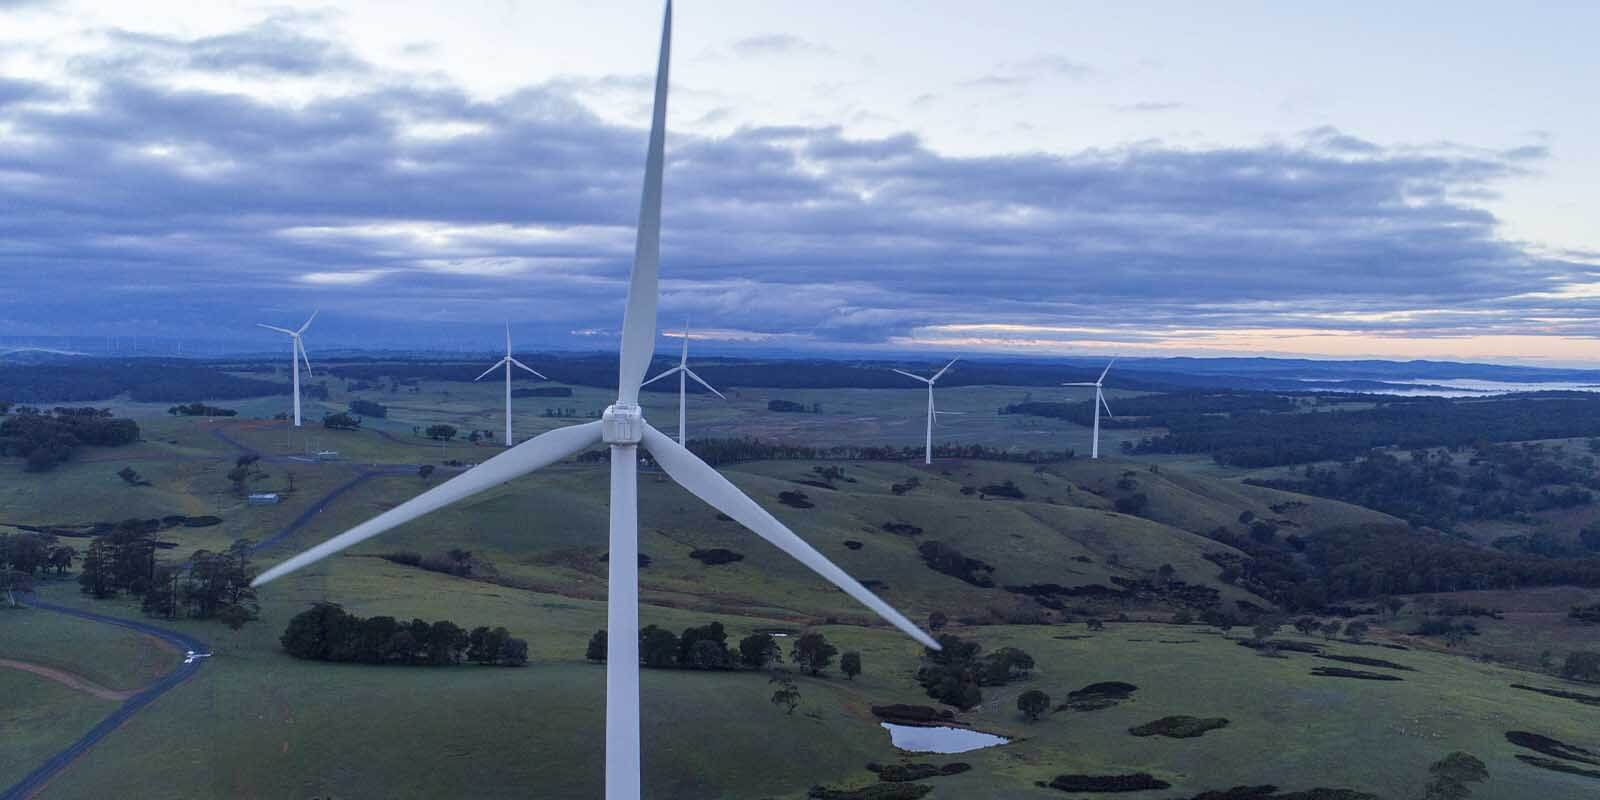 ACCIONA ENERGÍA AWARDED TOP ESG SCORE IN POWER SECTOR BY S&P